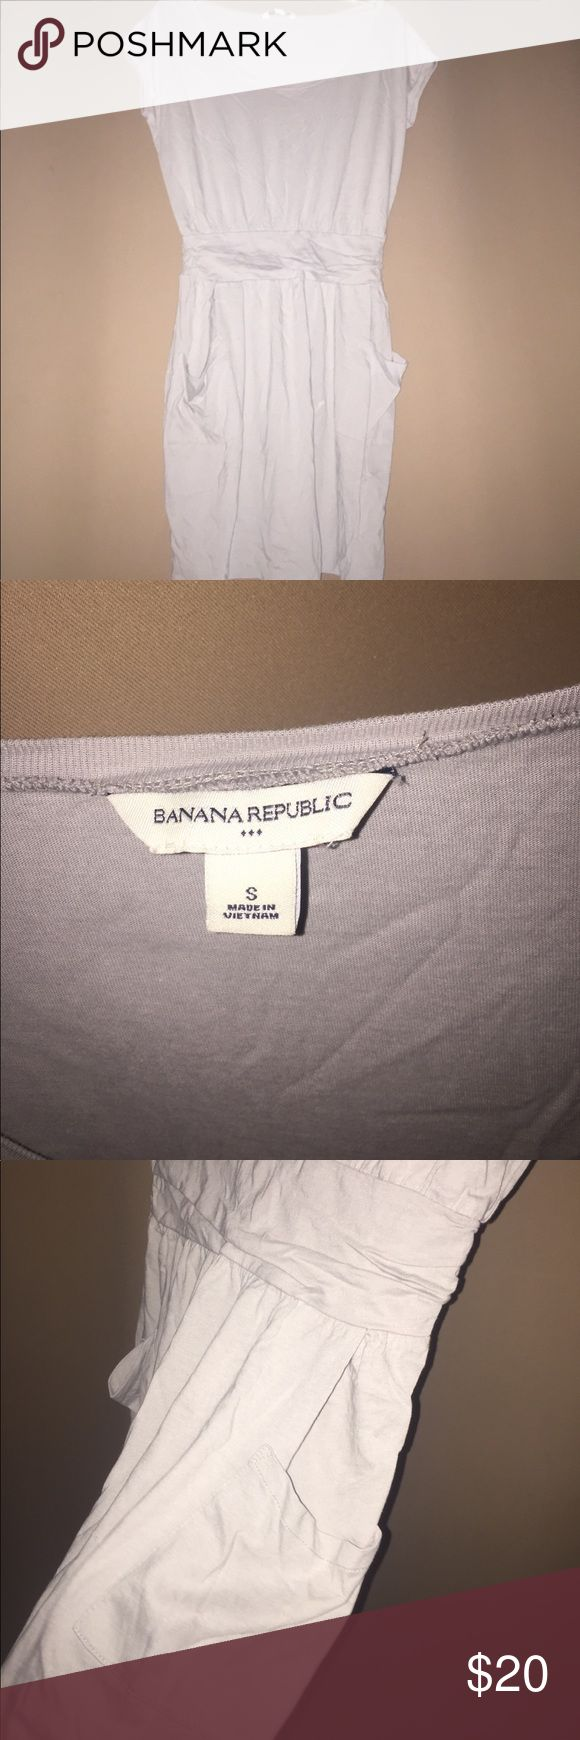 tshirt dress with pockets new without tags! MAKE ME AN OFFER Banana Republic Dresses